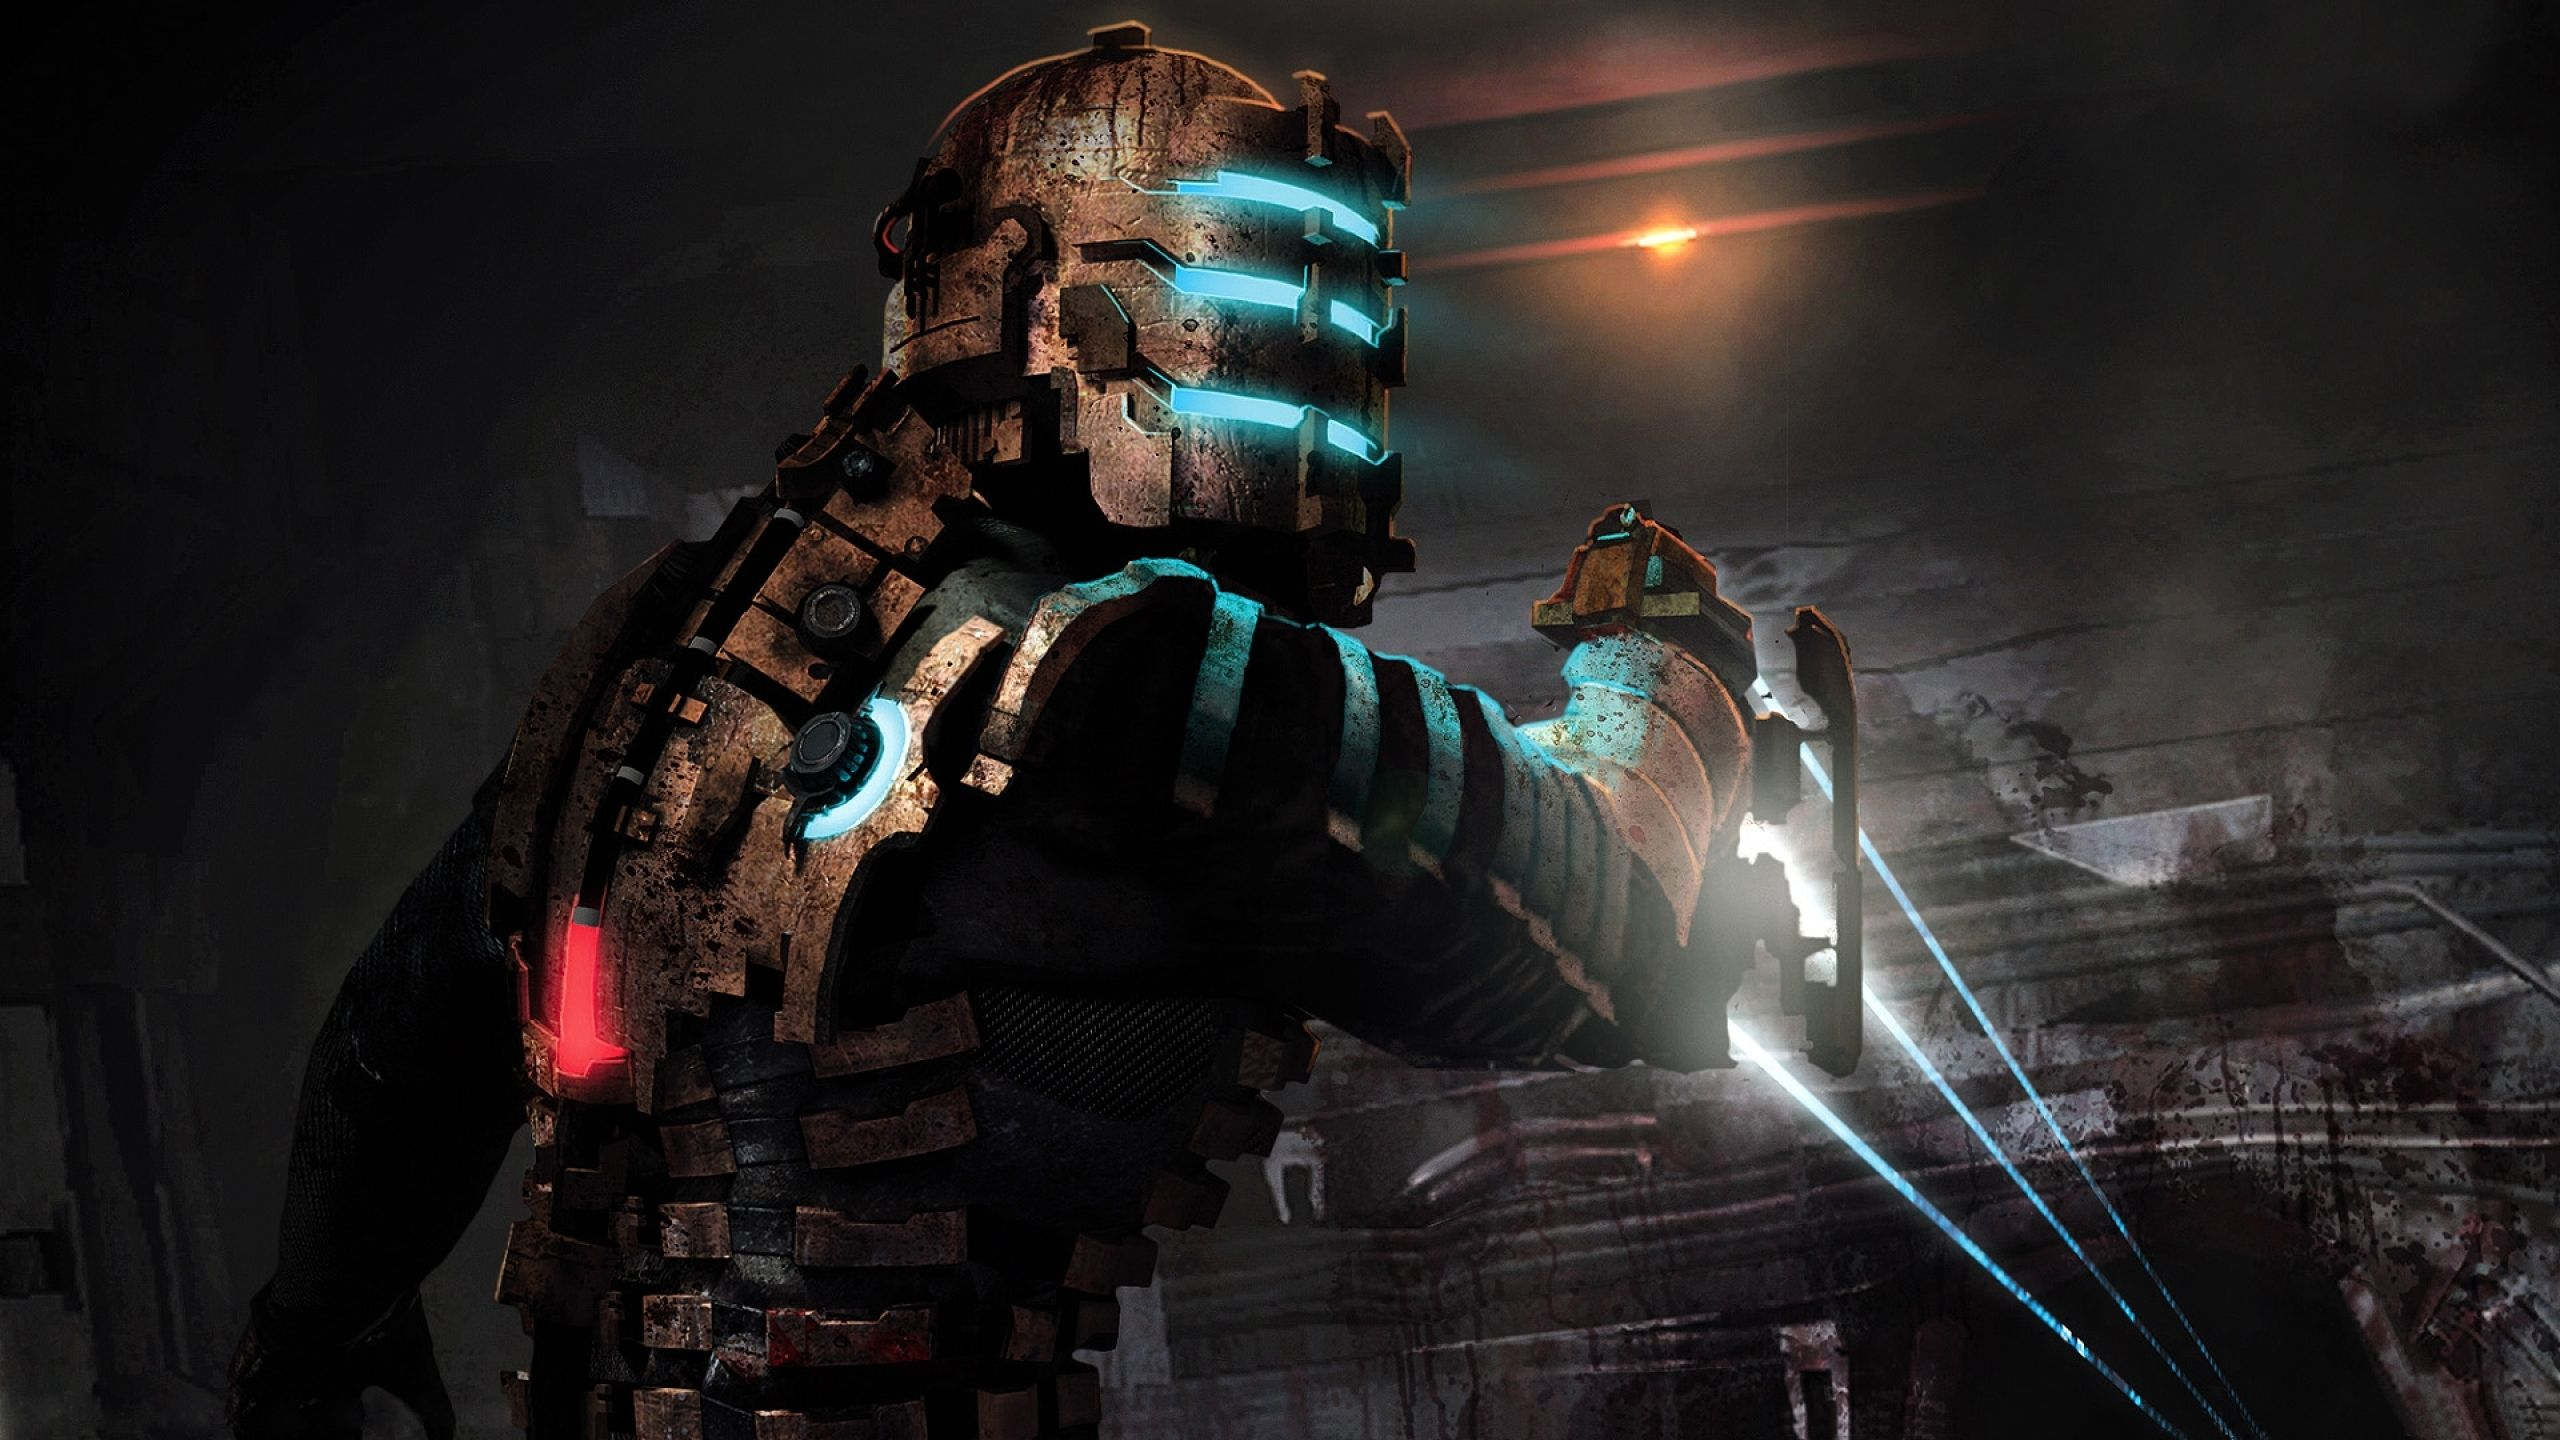 Download Wallpapers Download 2560x1440 Dead Space 1920x1080 Wallpaper Wallpaper Free Wallpapers Download Space Art Gallery Dead Space Space Pictures